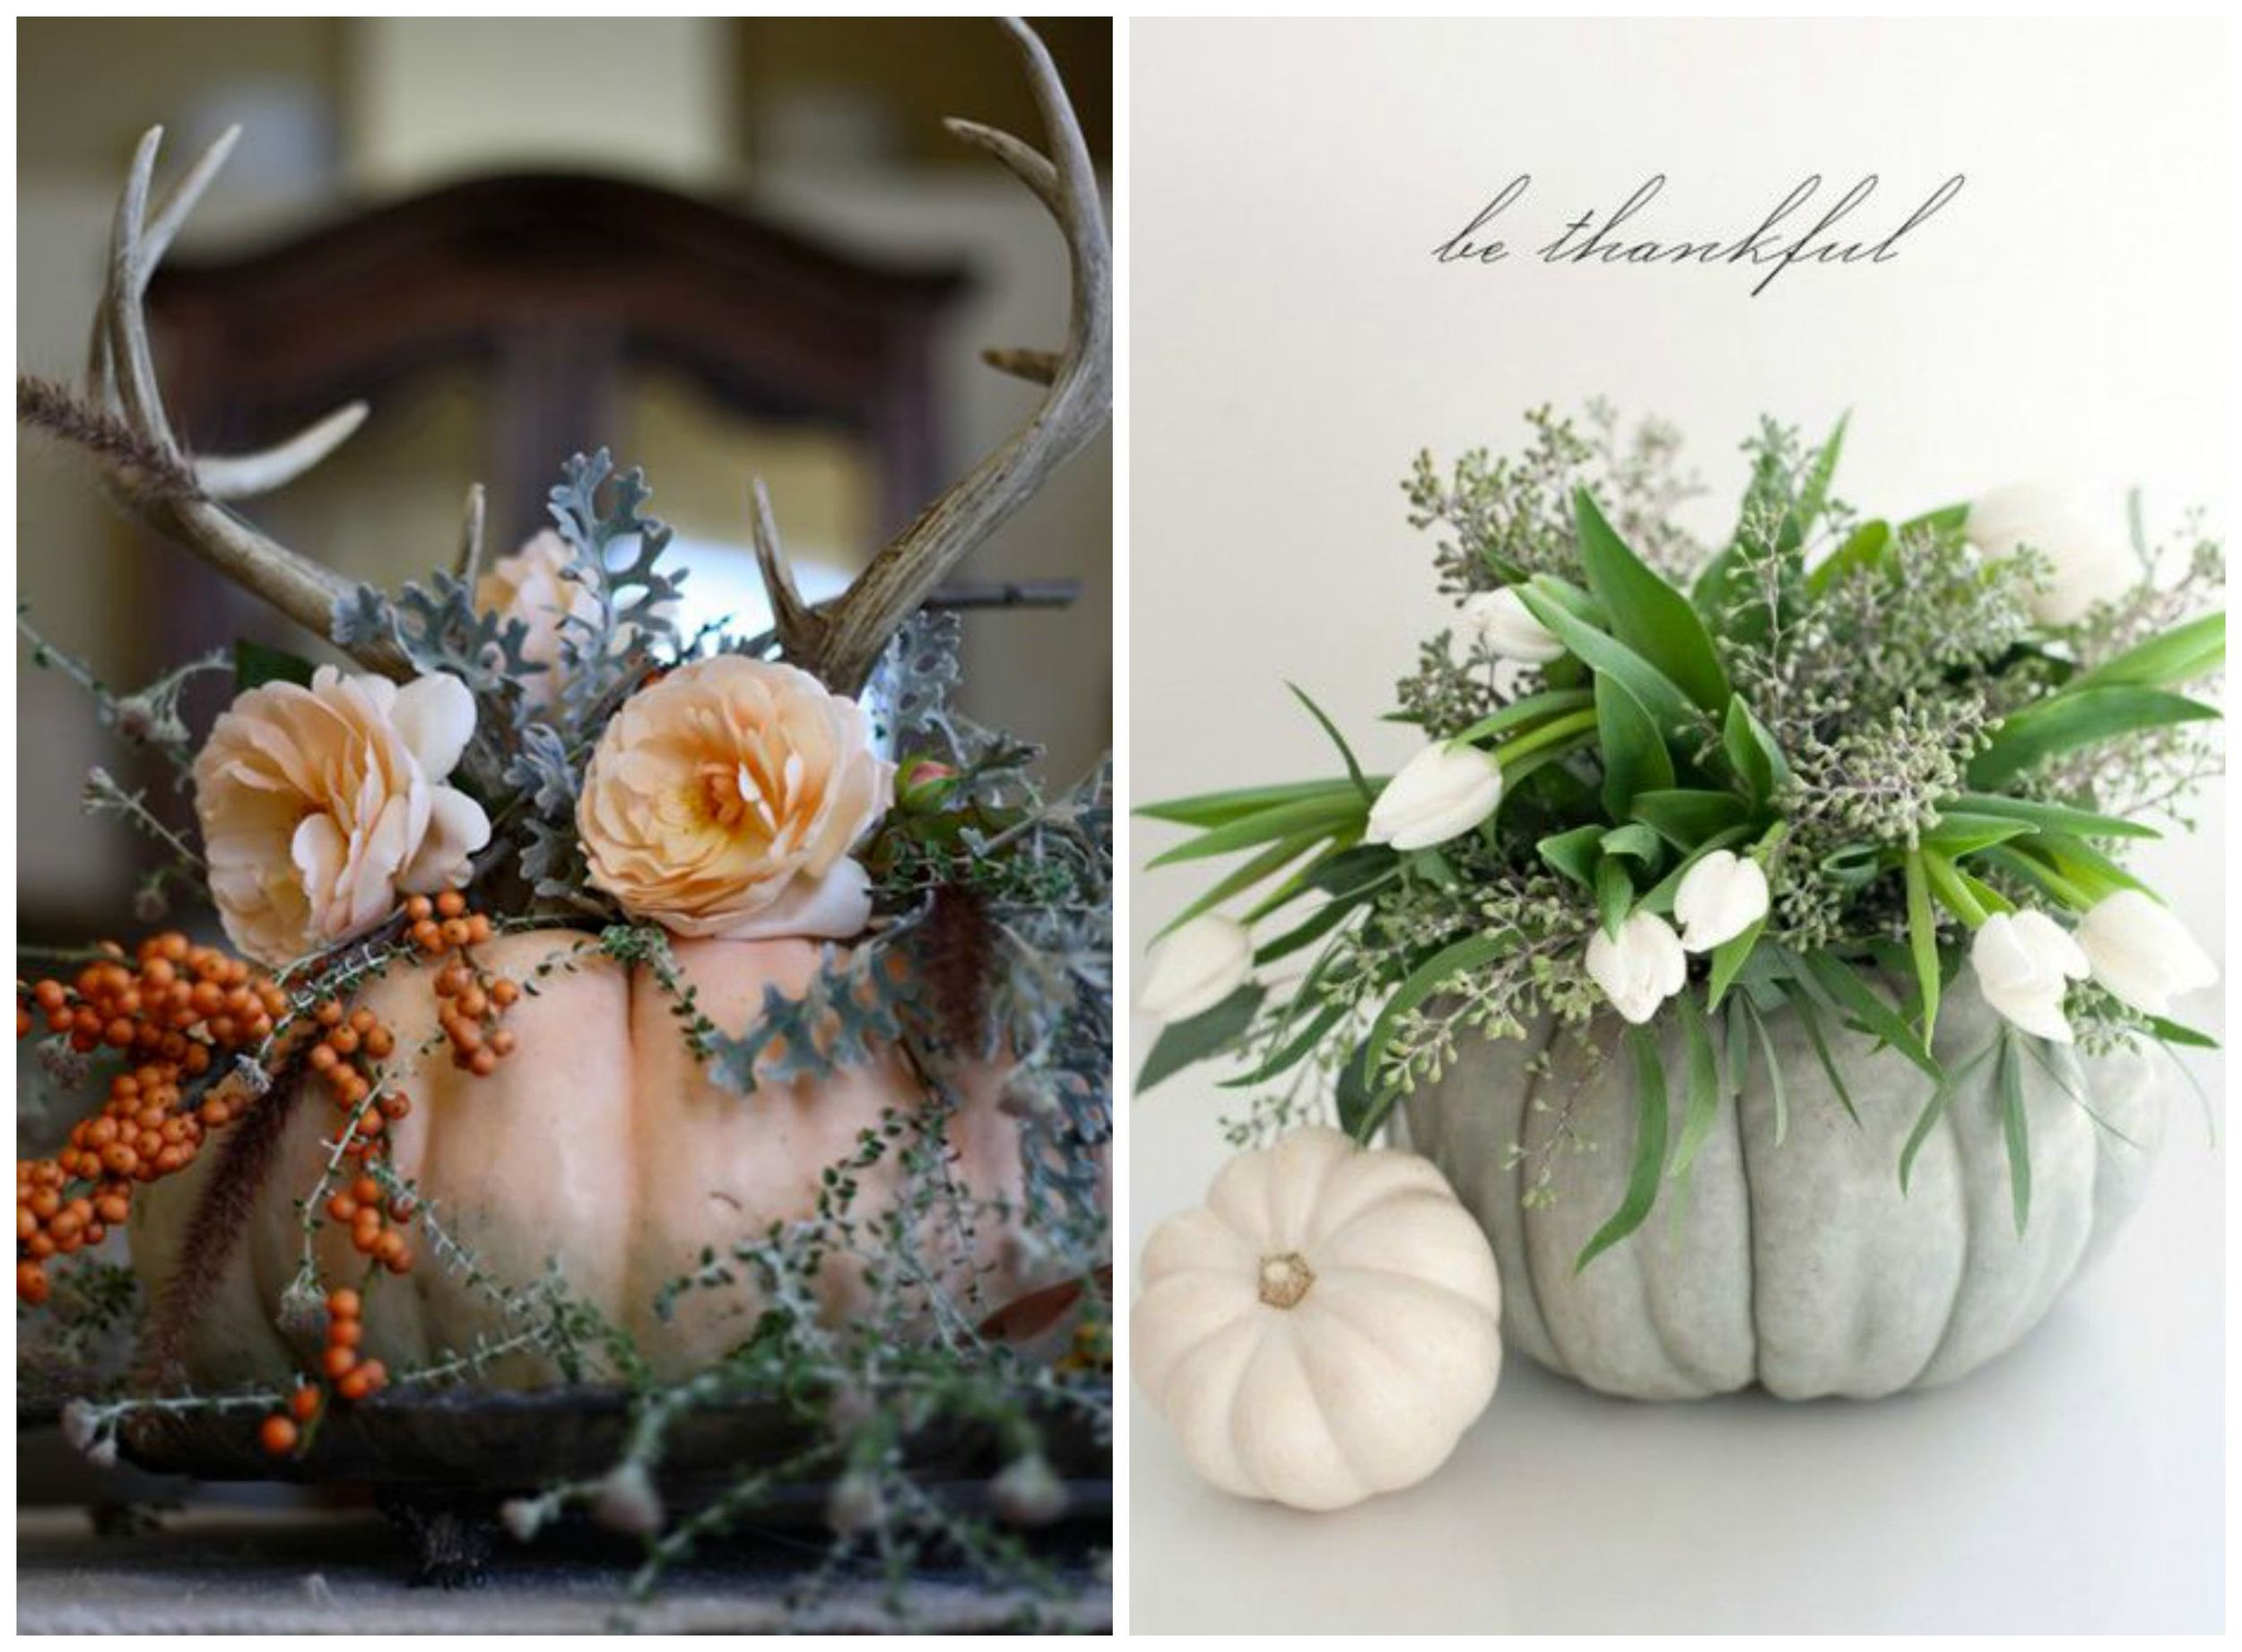 SaveOnCrafts ;  Decorating Your Small Space . Use pumpkins as vases for flower arrangements on your reception tables! Personally, I think this is prettiest when you're using white or painted pumpkins.